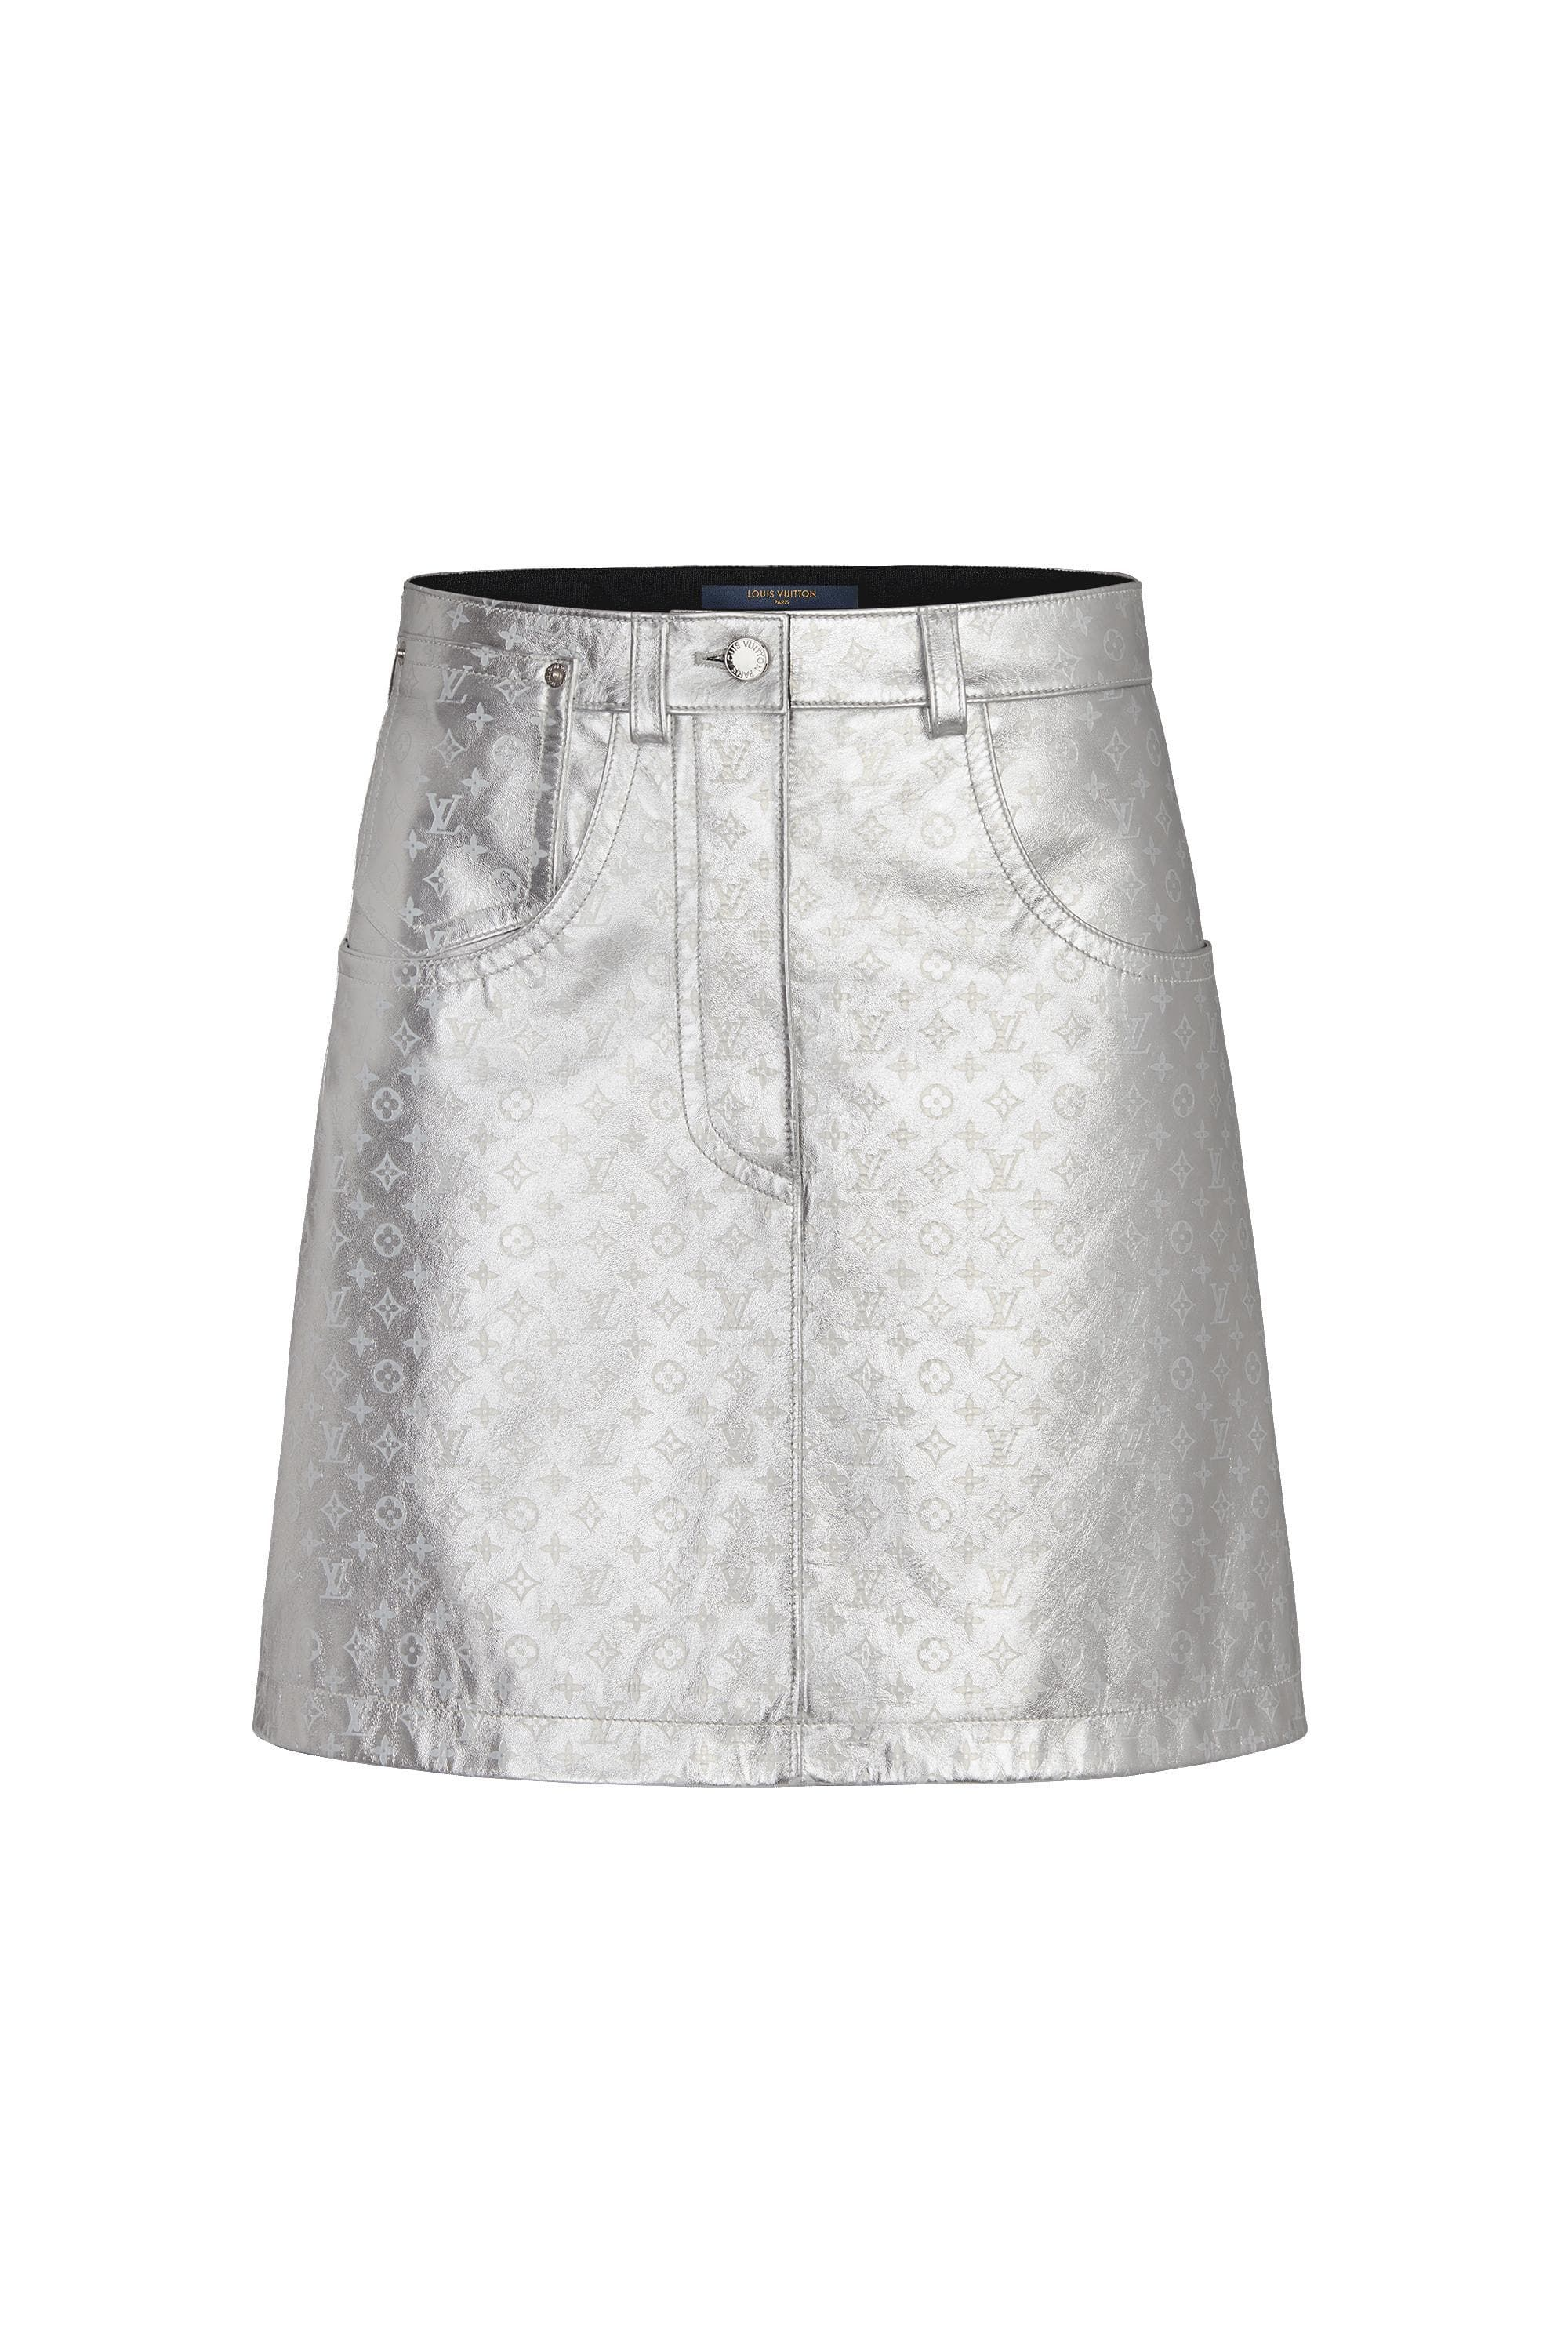 9a4cef7a56 Embossed Monogram Leather Mini Skirt in 2019   style   Mini skirts ...